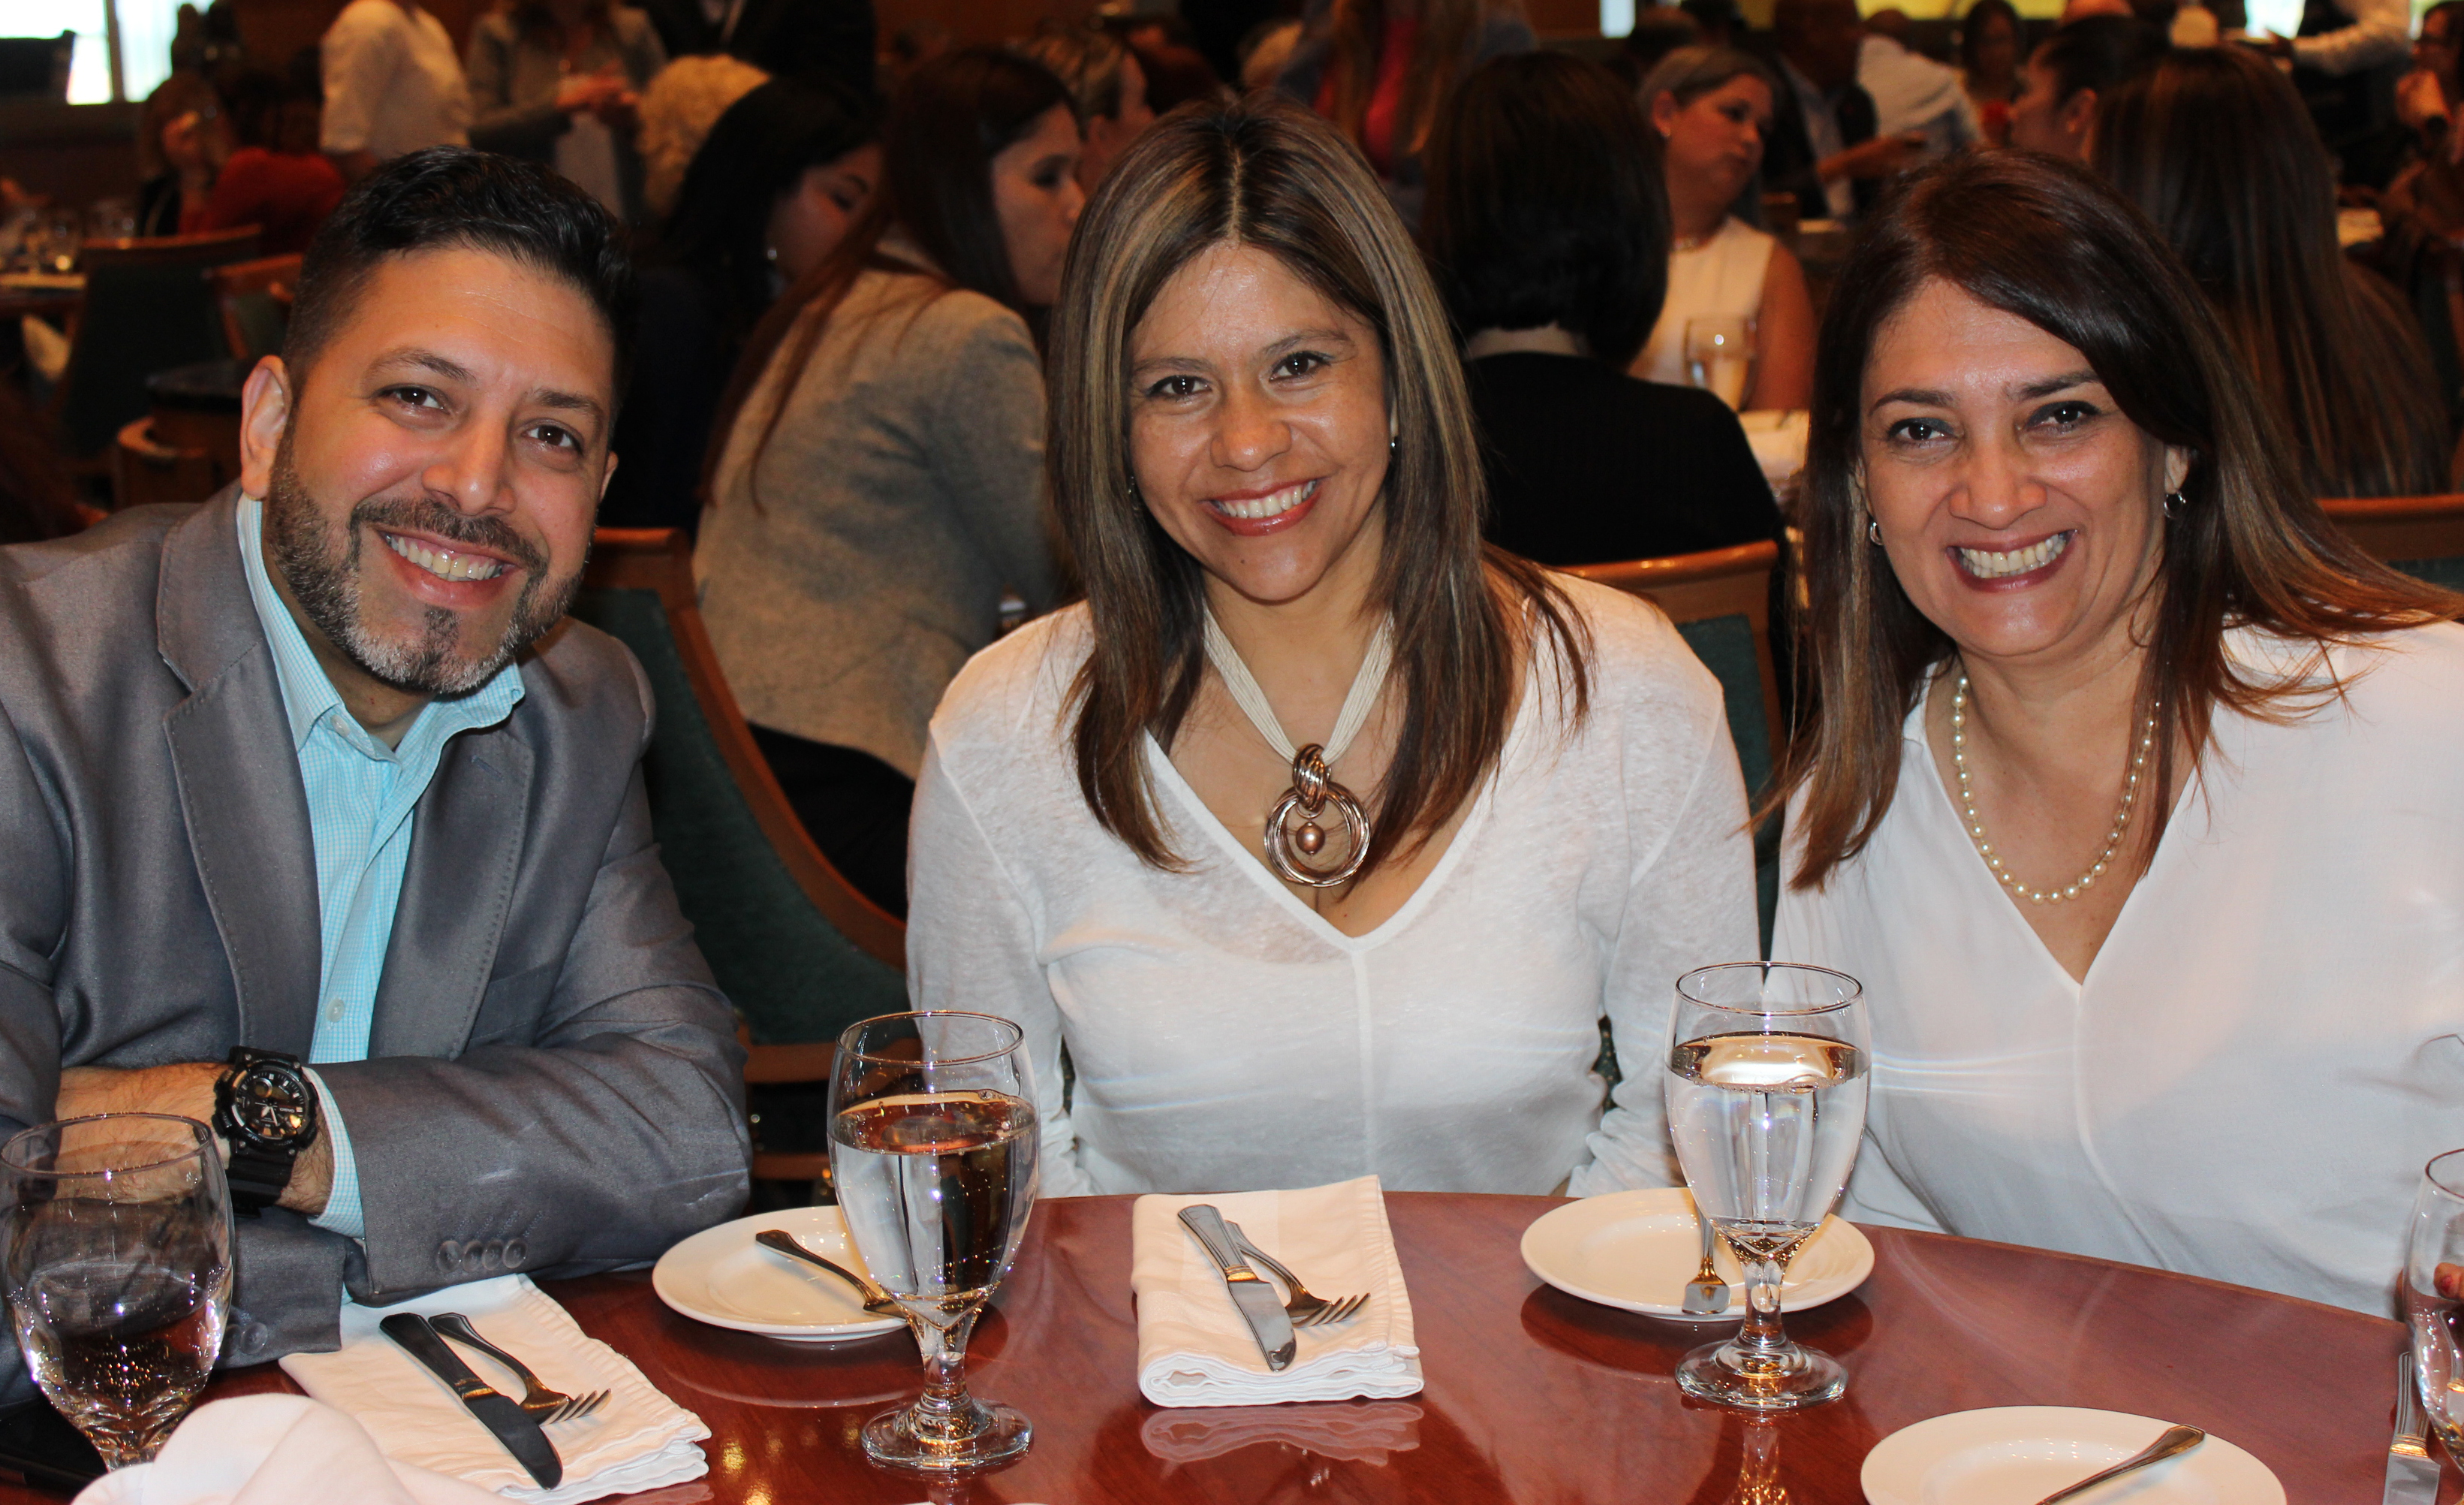 Doral Chamber of Commerce Carnival Cruise Luncheon 2019, Networking Event in Miami, Florida. Group photo, DCC, Carnival Cruise Luncheon Dining Hall.